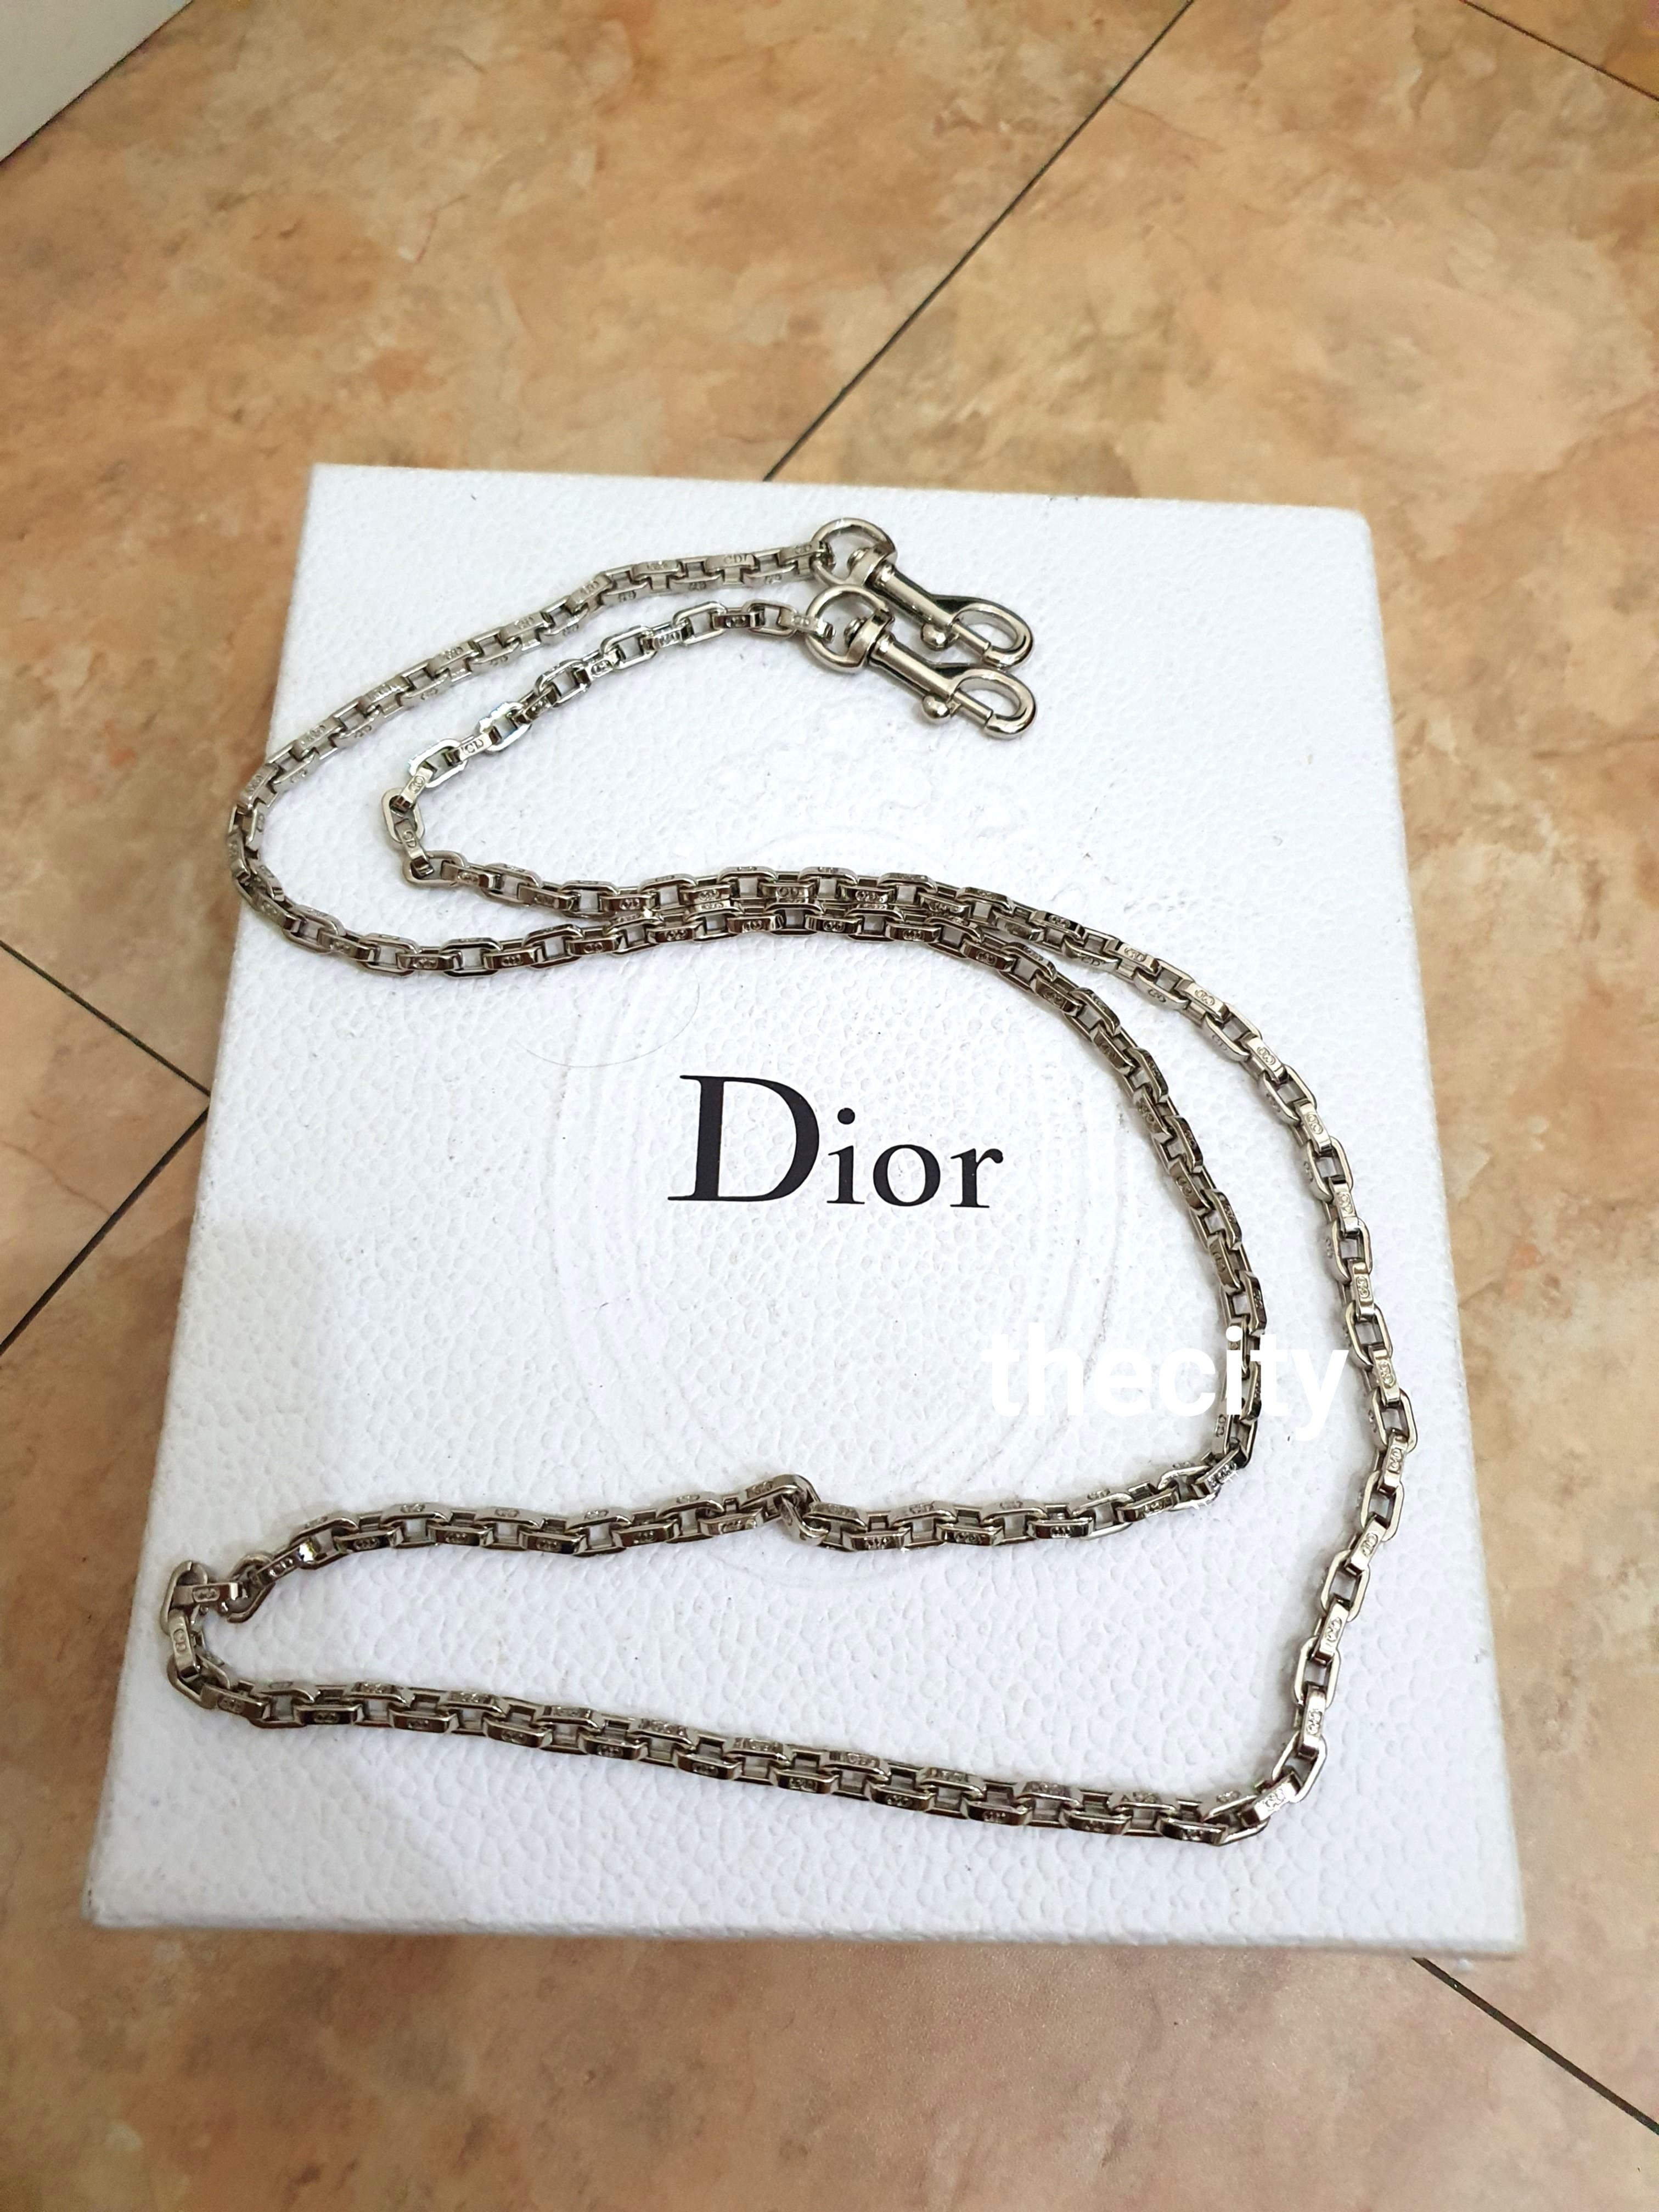 LIKE NEW ! (NEVER BEEN USED) - AUTHENTIC DIOR SILVER STRAP - (TAKEN FROM DIOR BAG SET) -  APPROX 110CM LENGTH